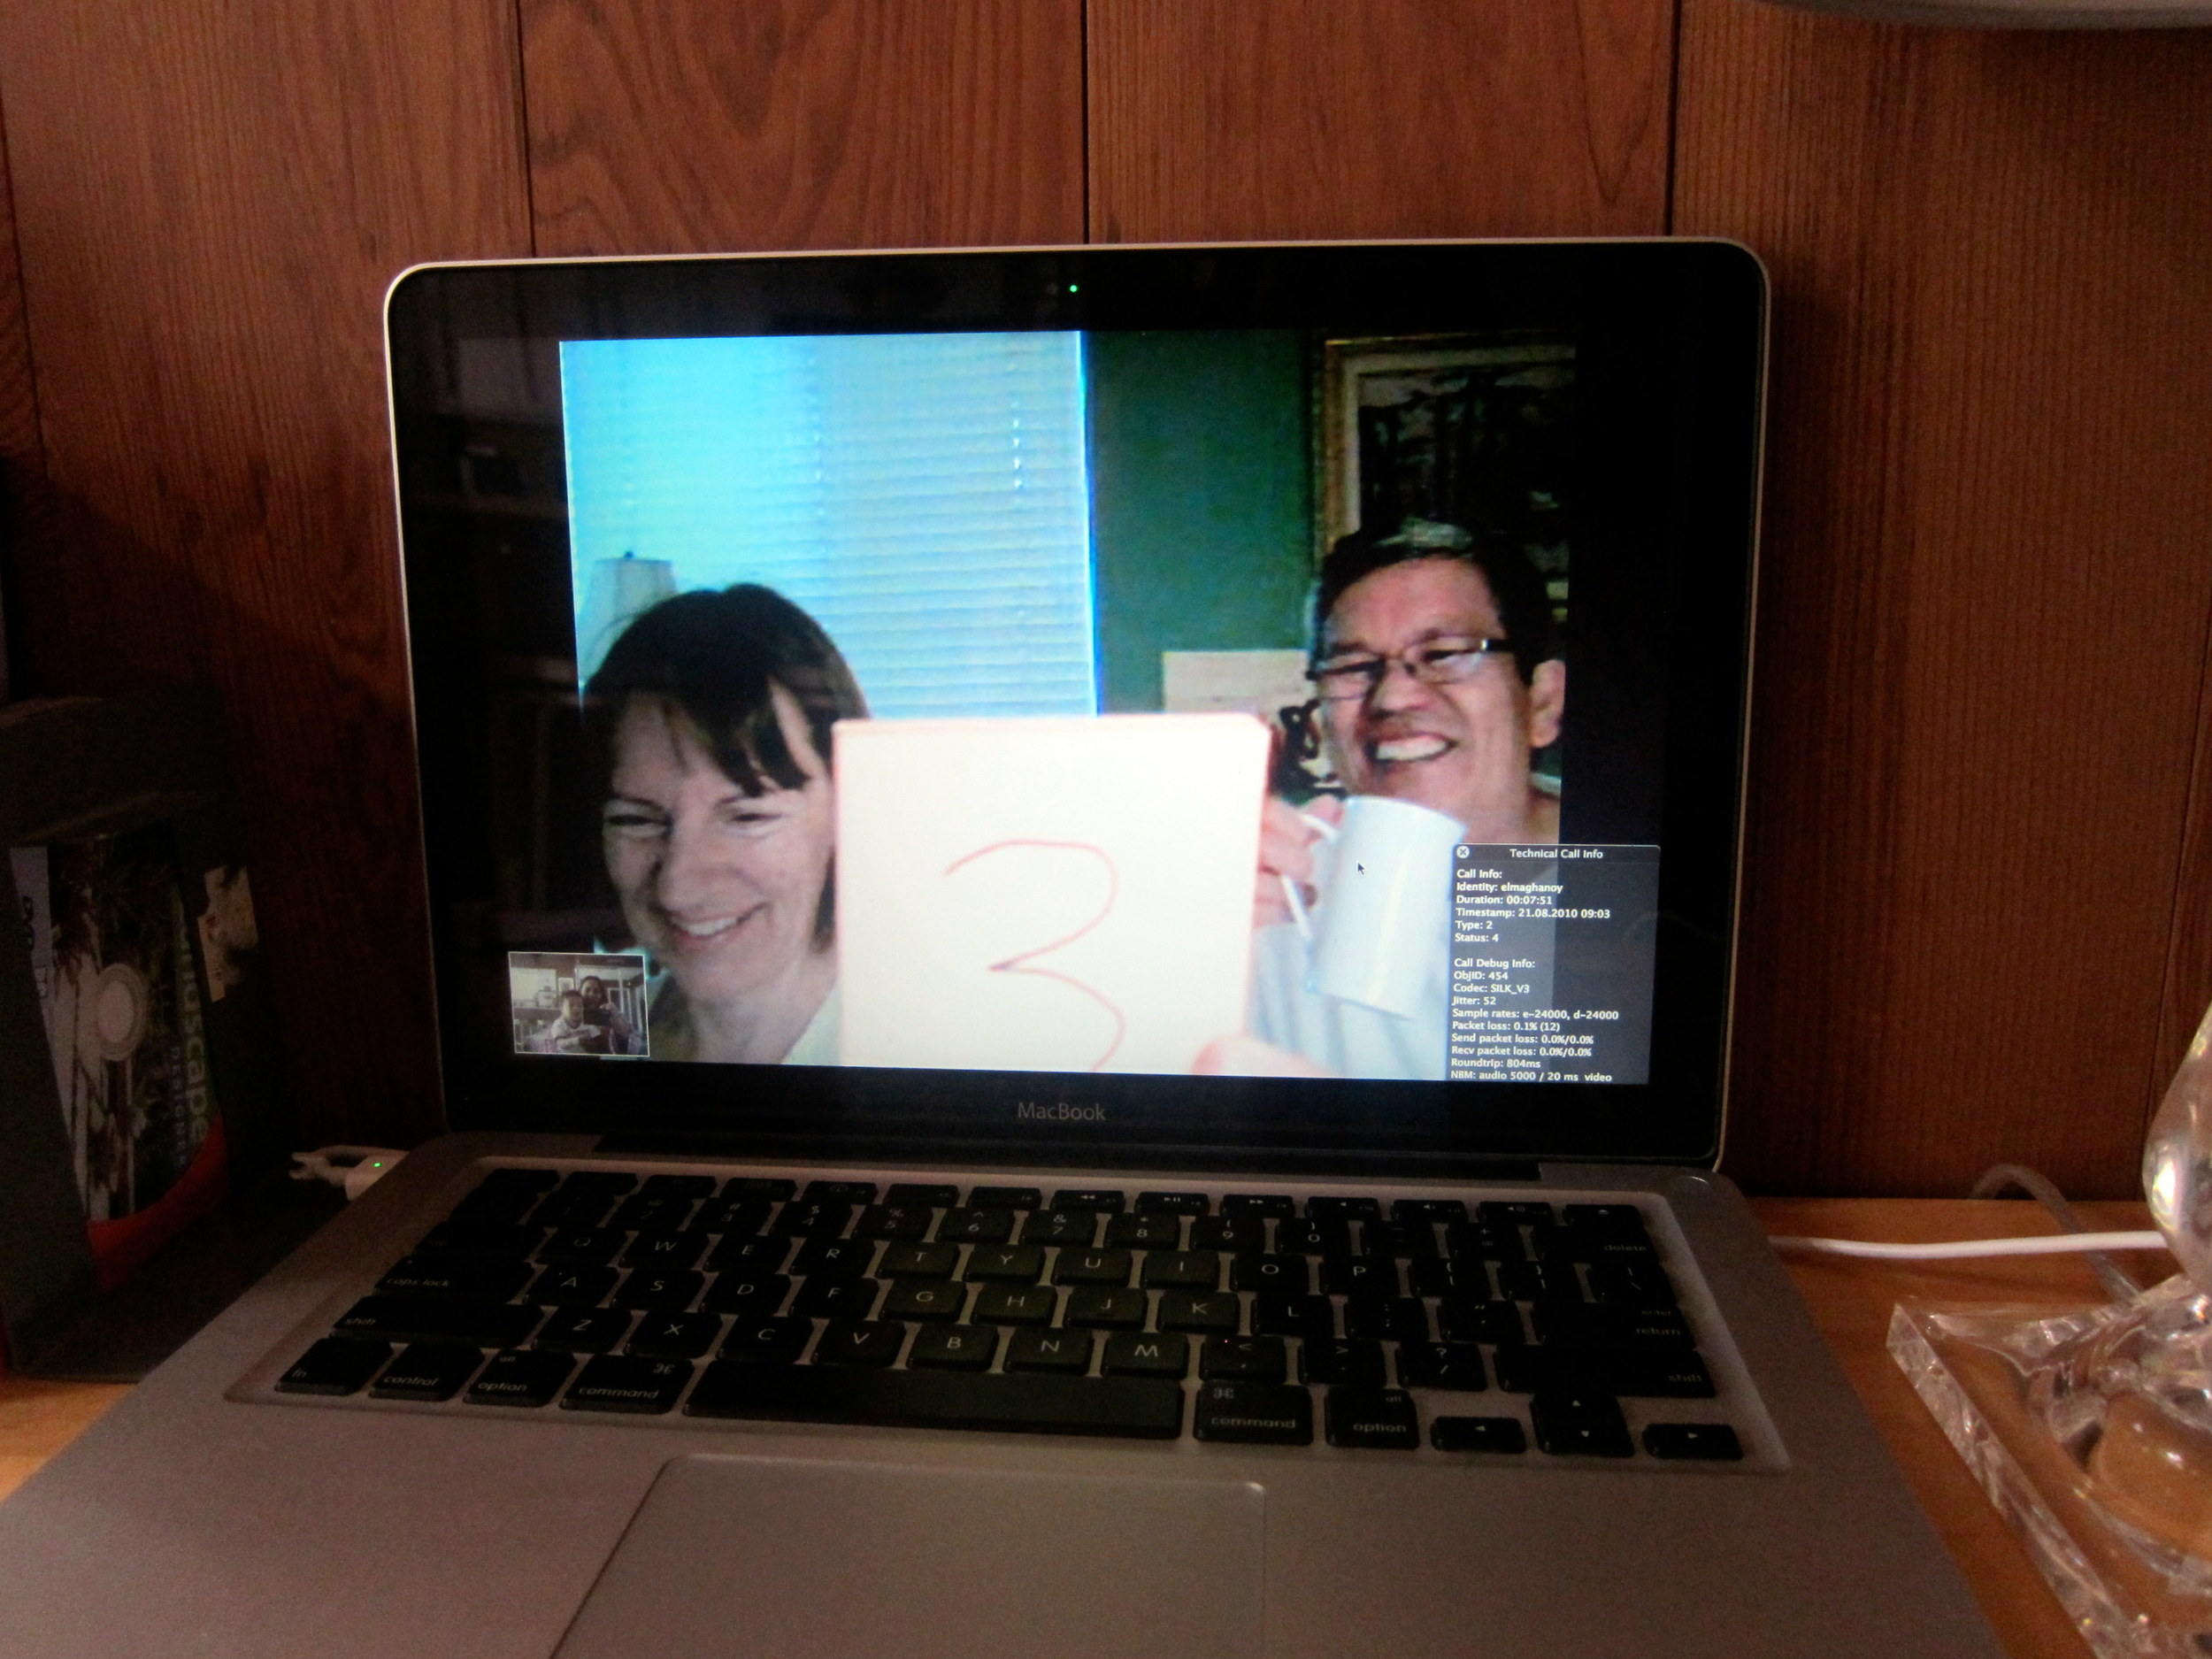 Skyp with Gma and Lolo